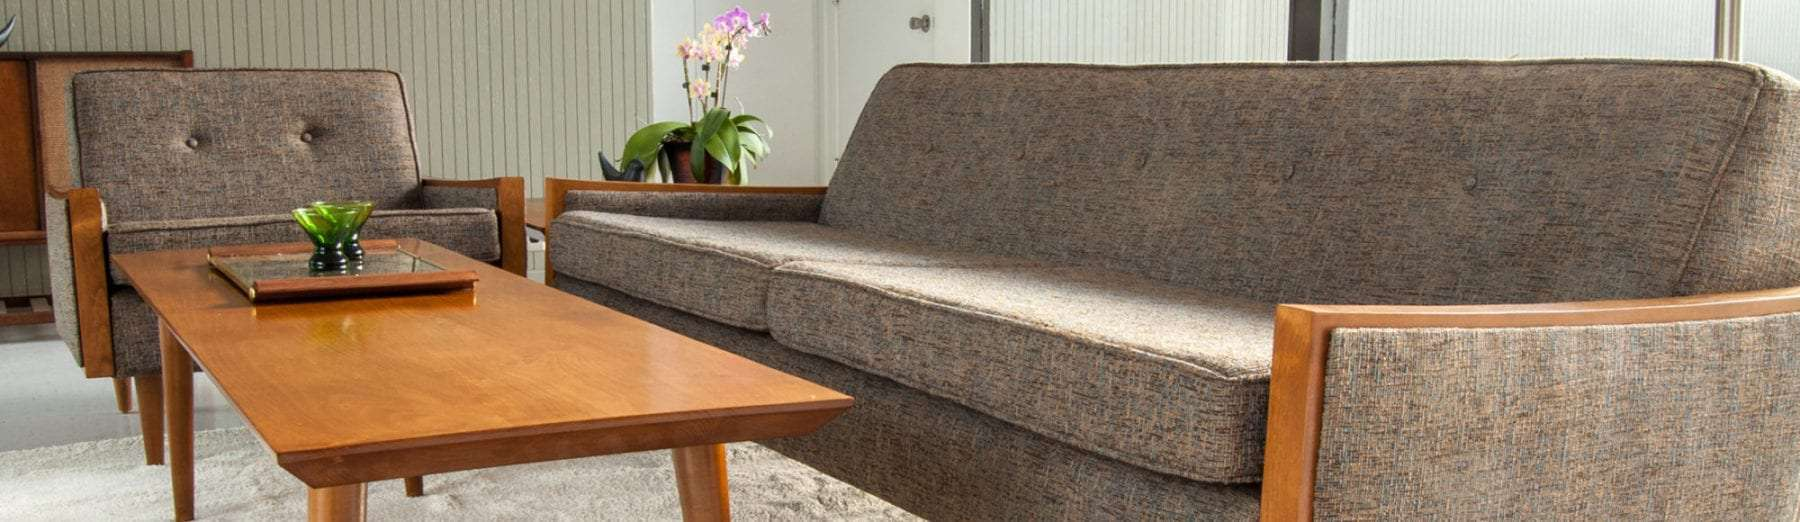 mad men style sofa - affordable mid century modern furniture